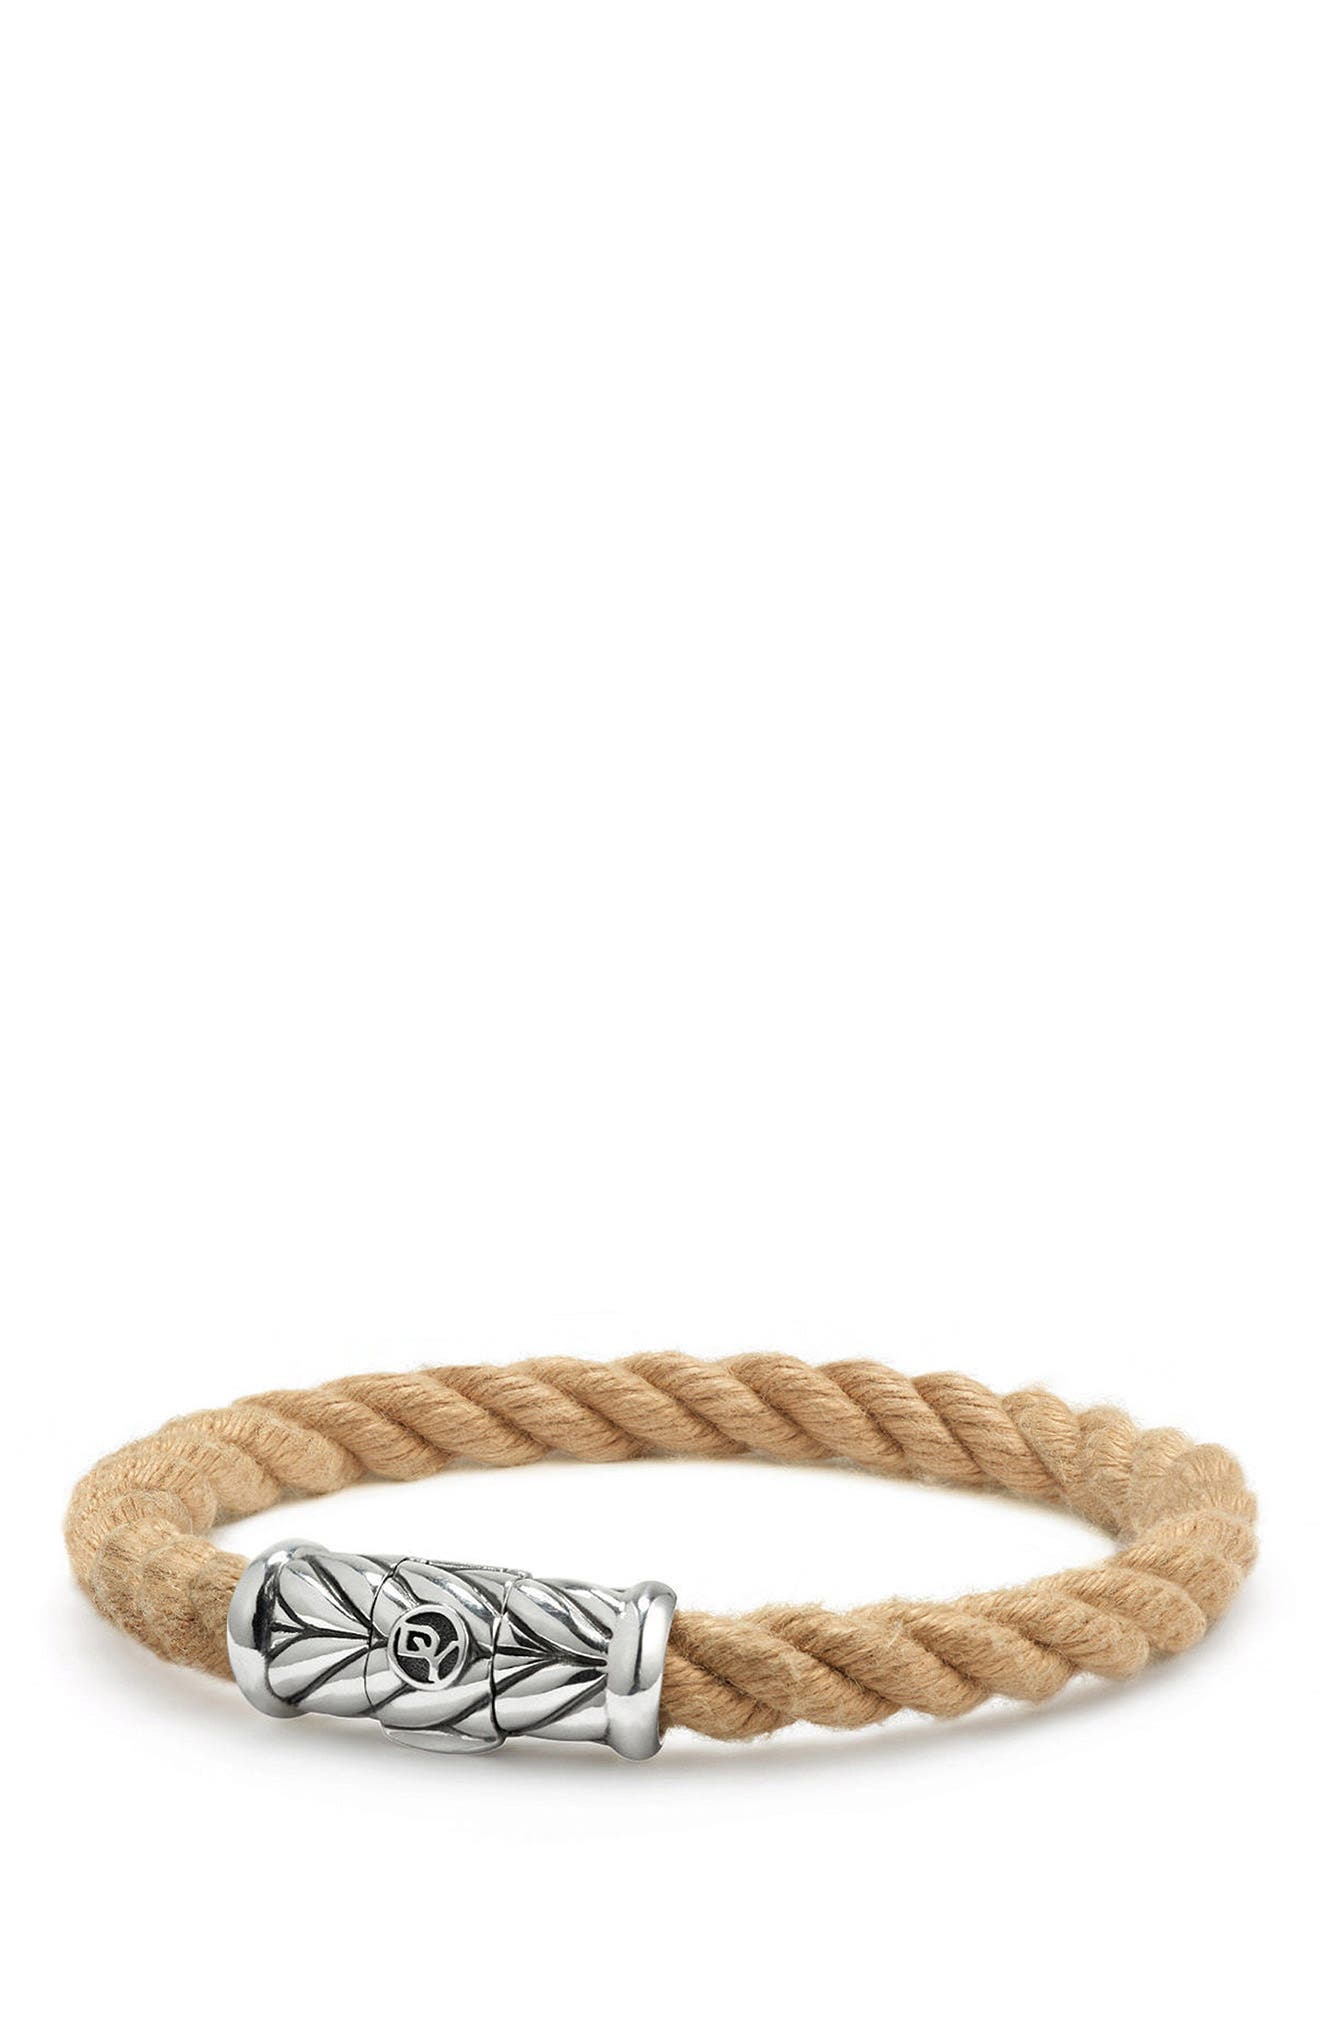 Maritime Rope Bracelet,                             Main thumbnail 1, color,                             Silver